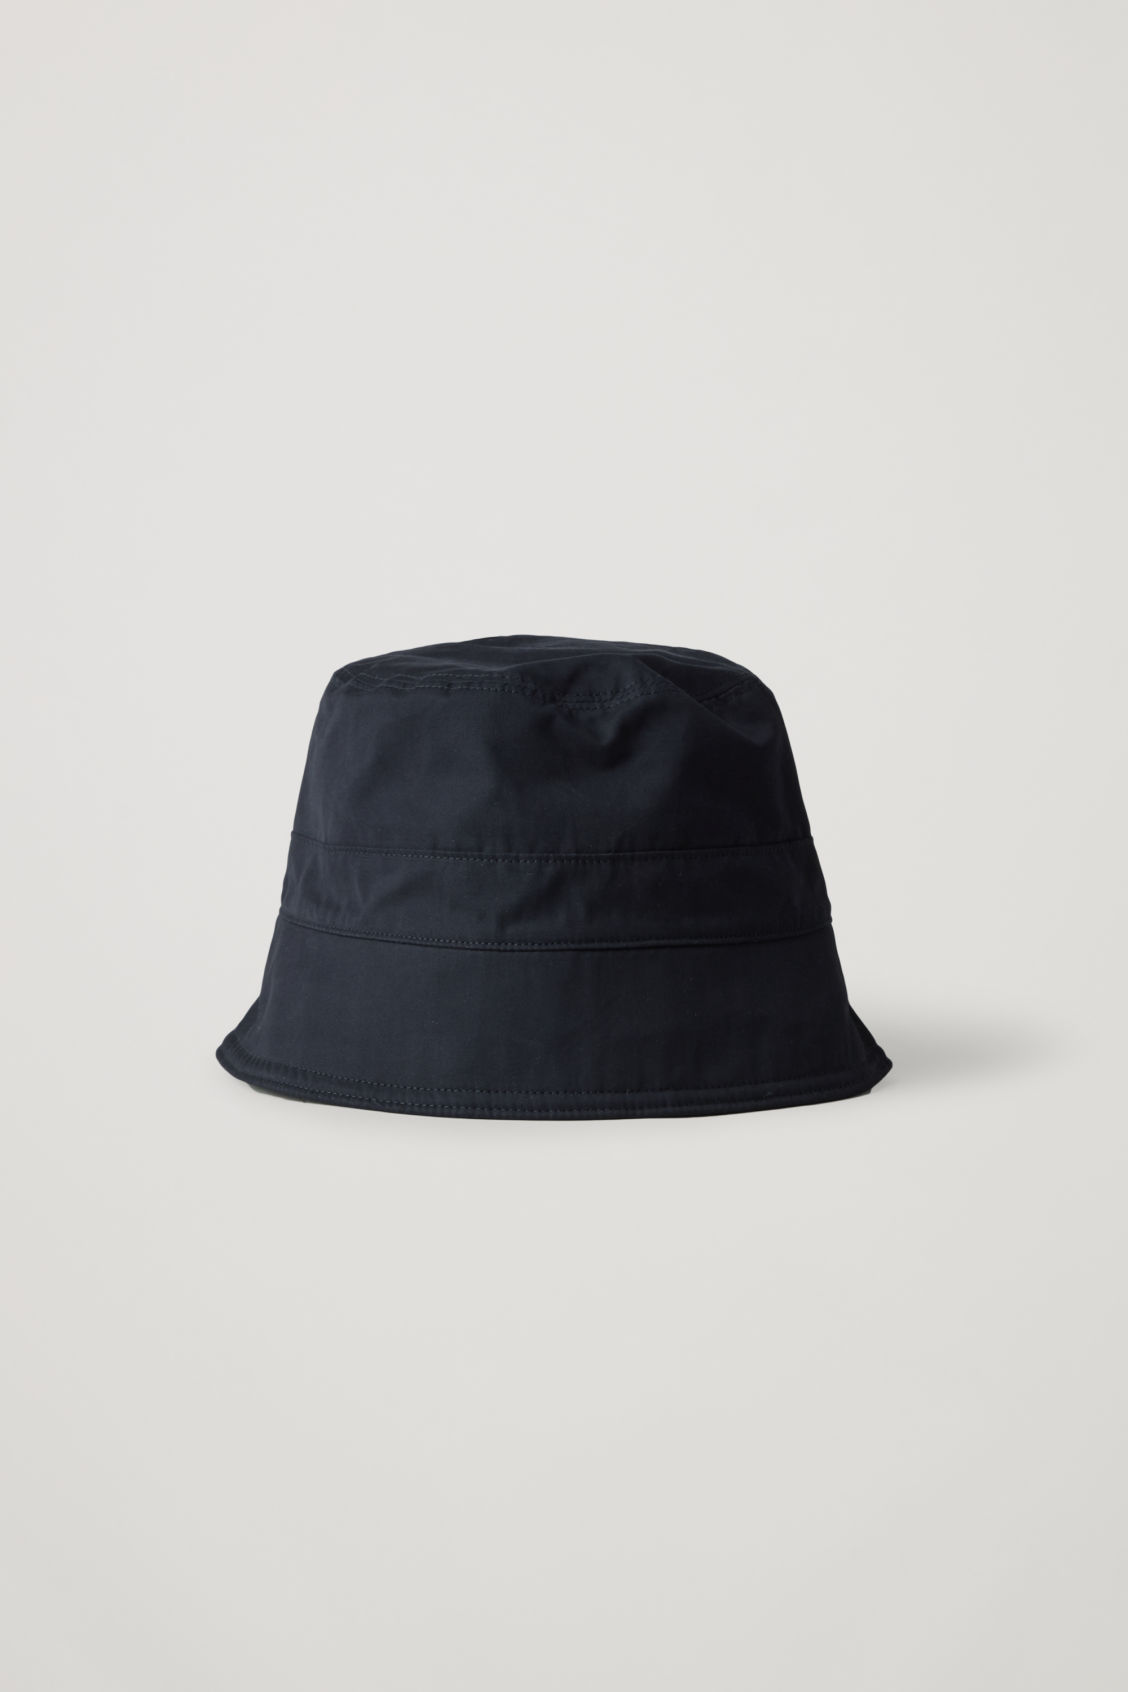 Cos Topstitched Bucket Hat In Blue